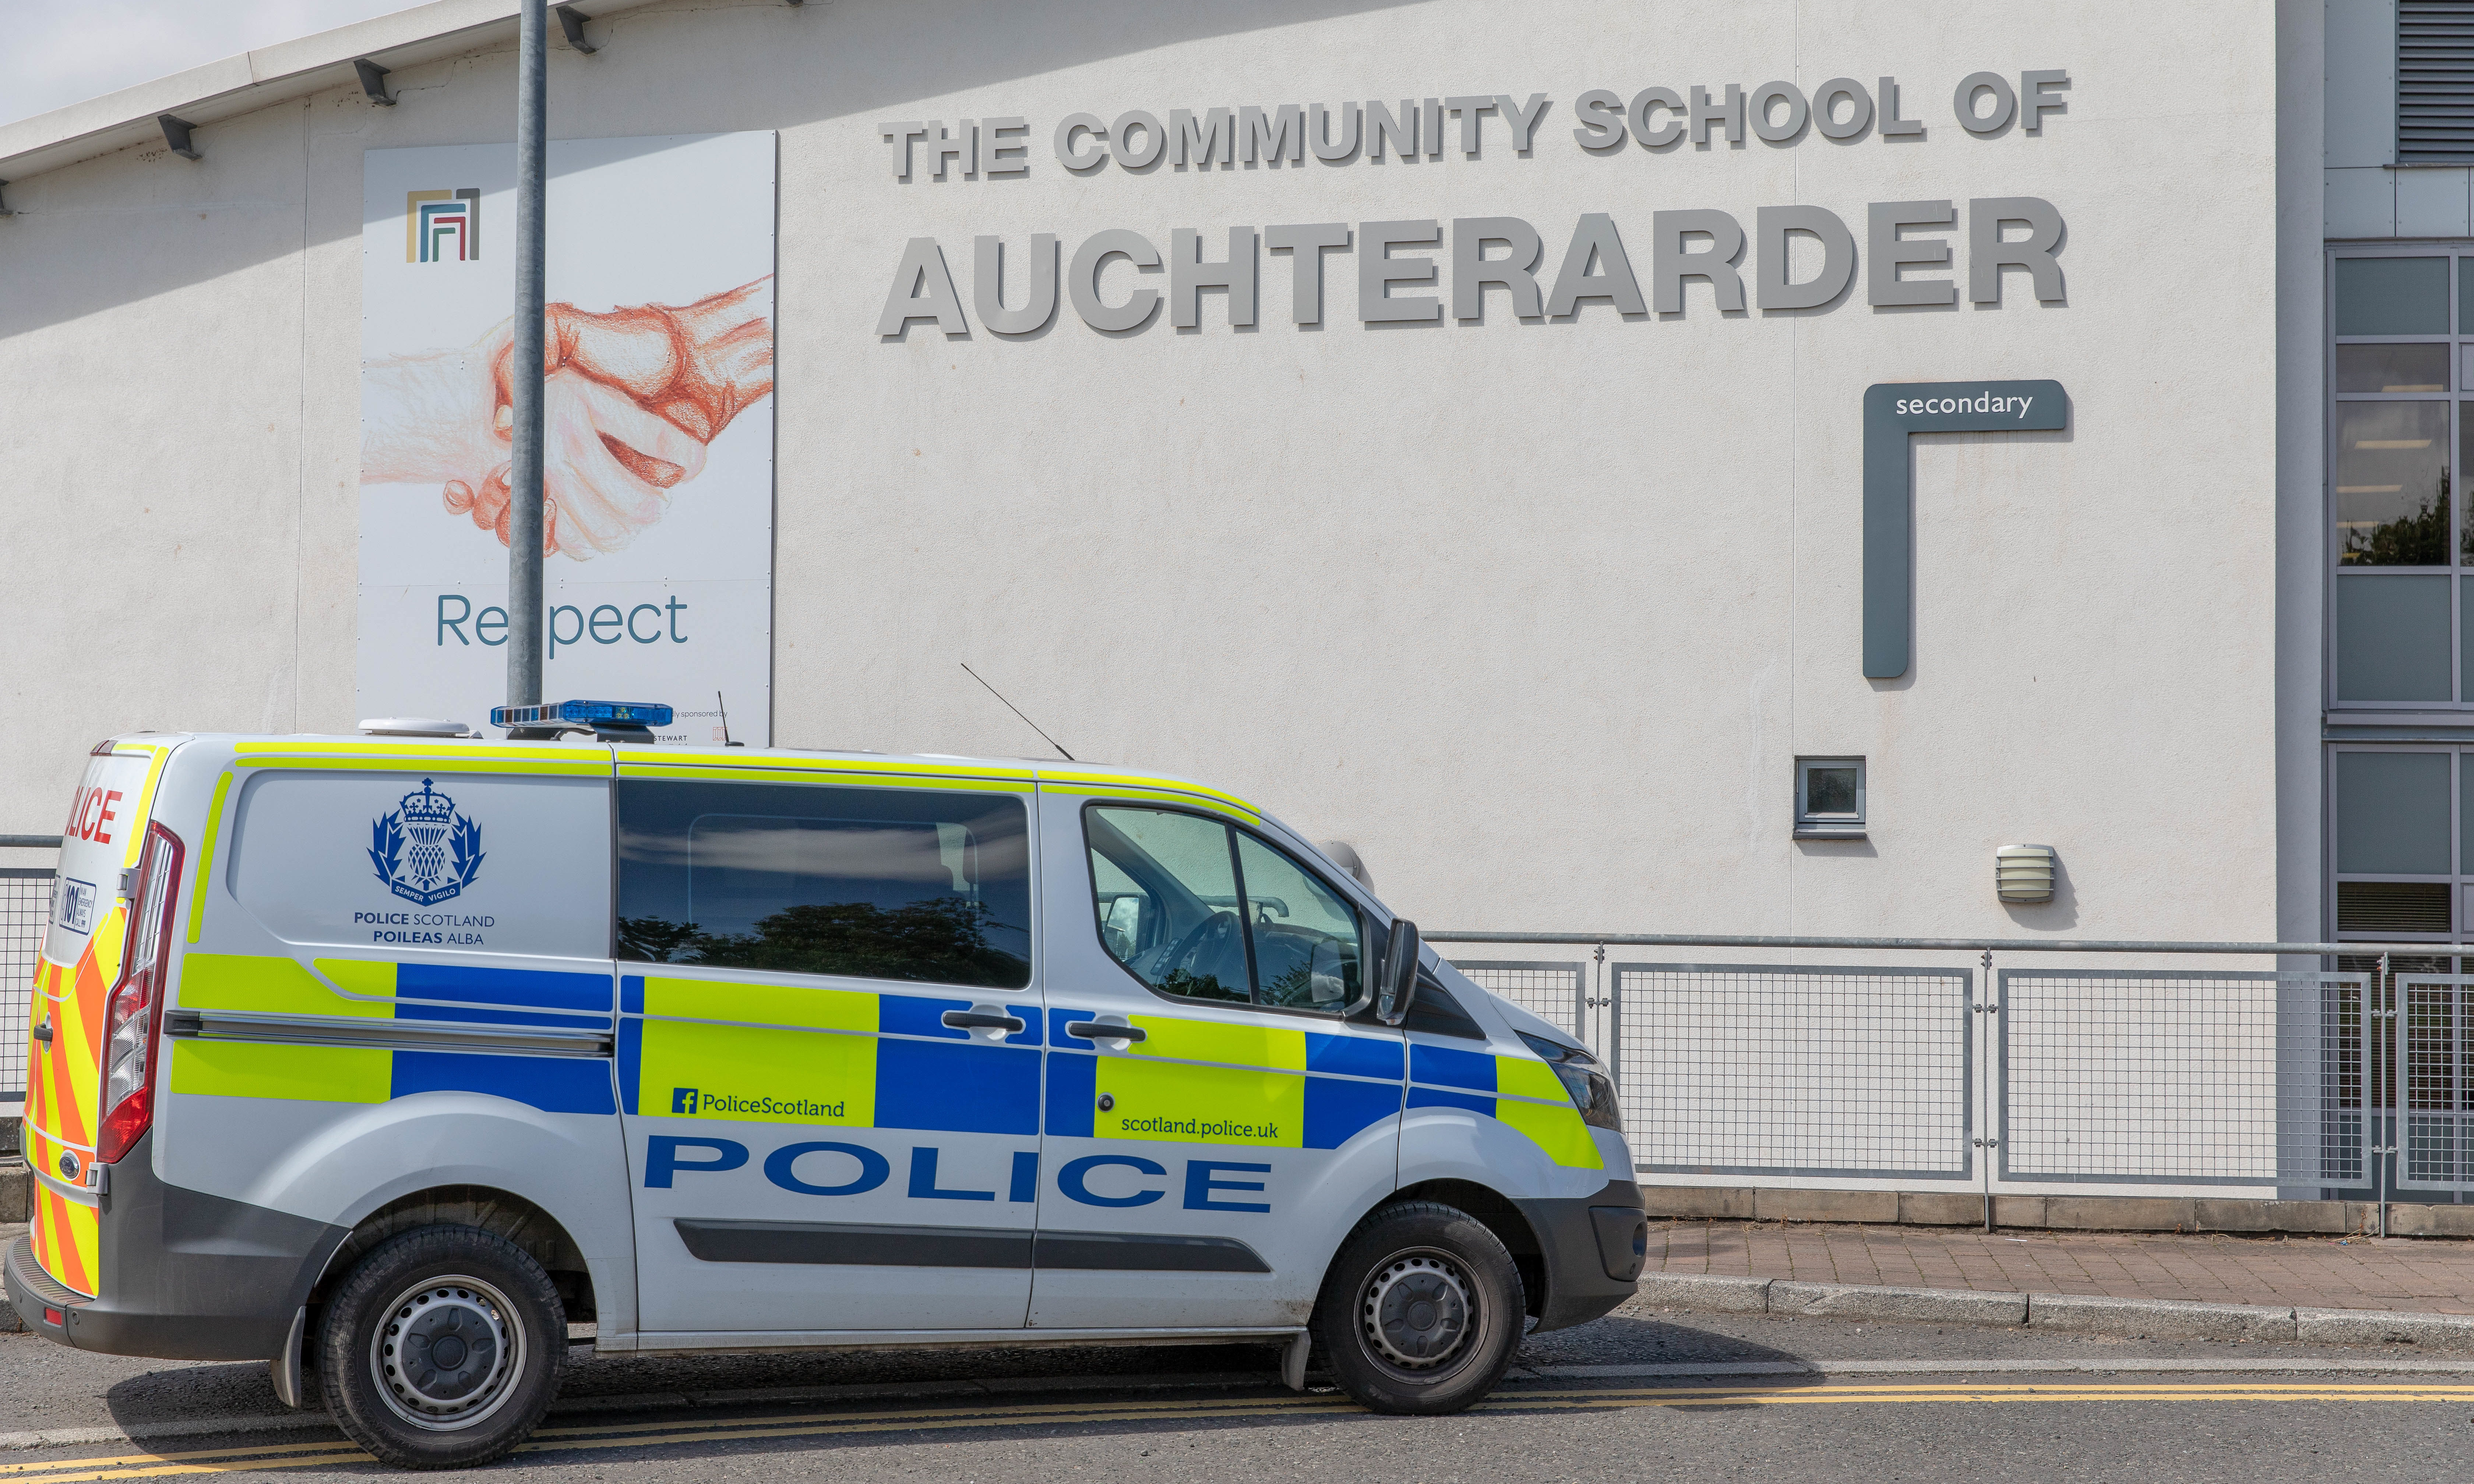 Graffiti at the Community School in Auchterarder, which appeared this month, is the latest in a string of incidents.